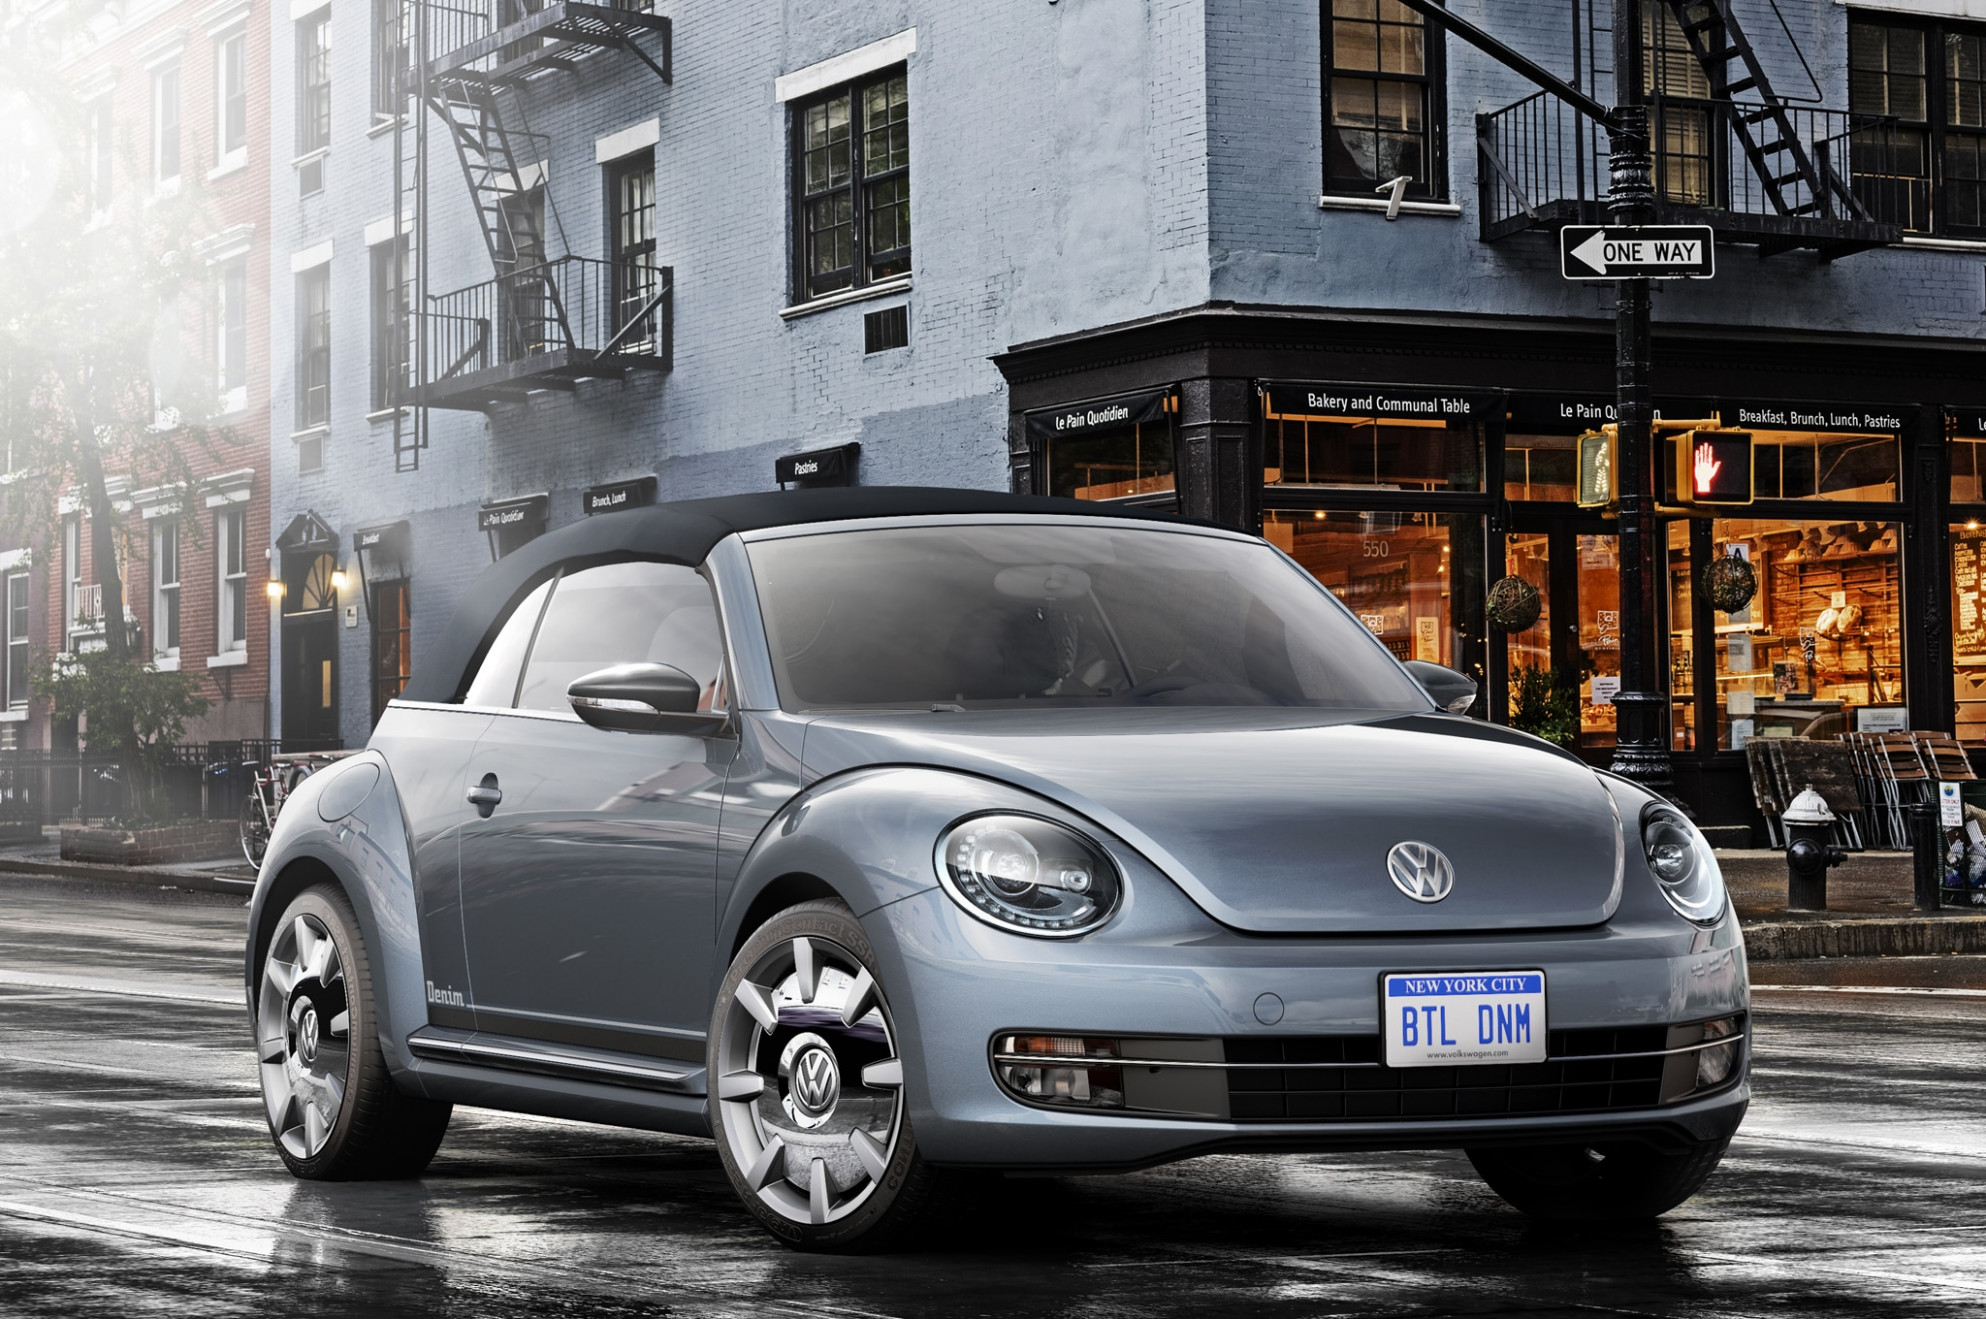 Production Volkswagen Beetle Dune, Beetle Denim Coming to Los Angeles | 2020 Volkswagen Beetle Denim